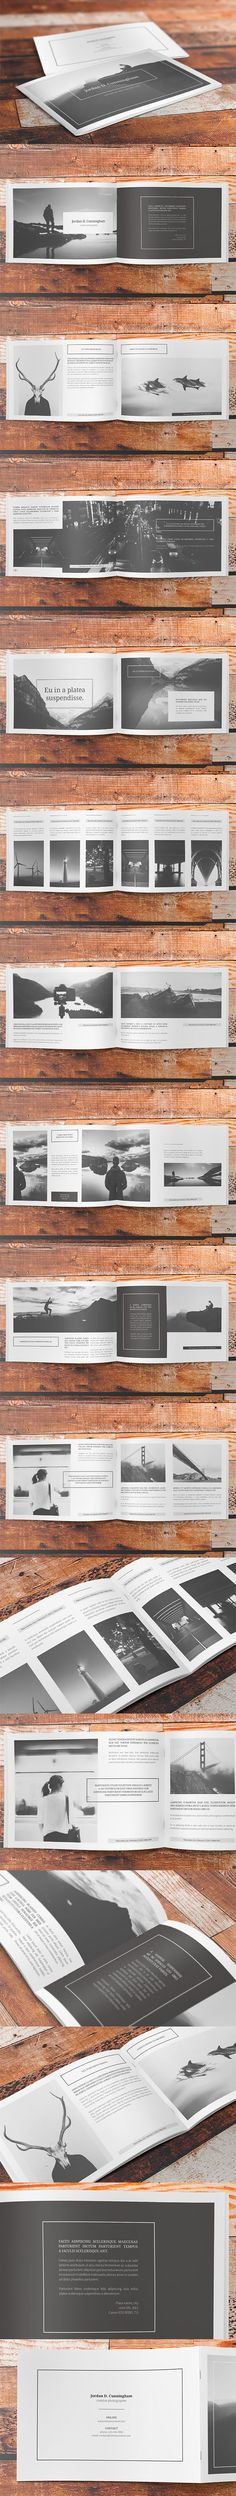 Minimalfolio #6 is a horizontal photography portfolio A4 brochure.